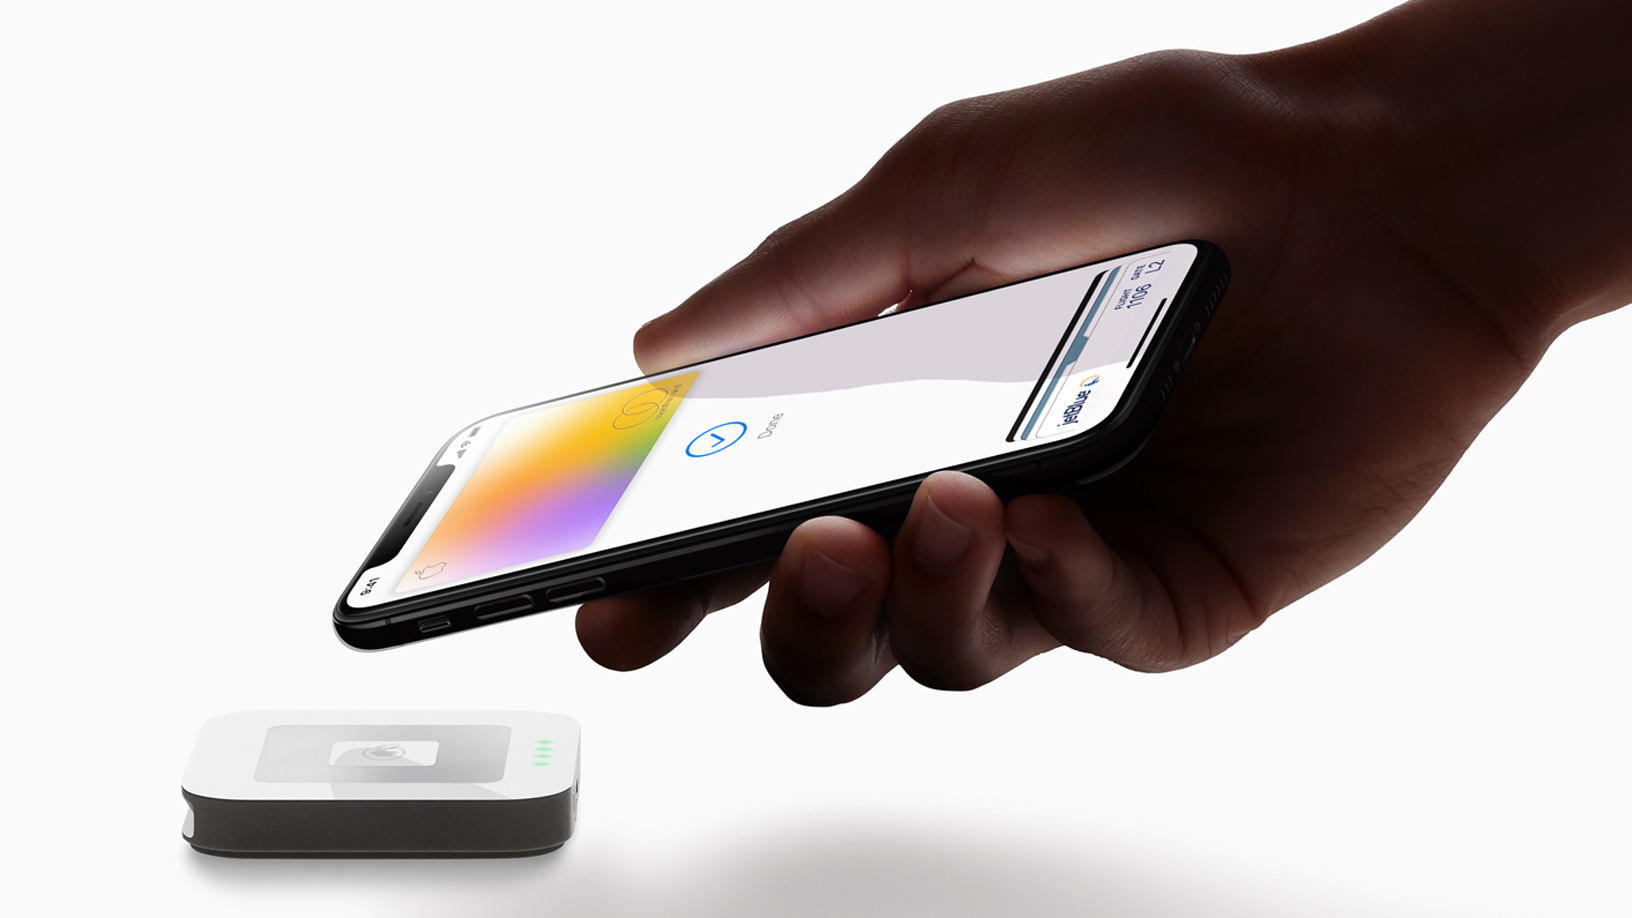 Apple Pay support rolling out in South Africa